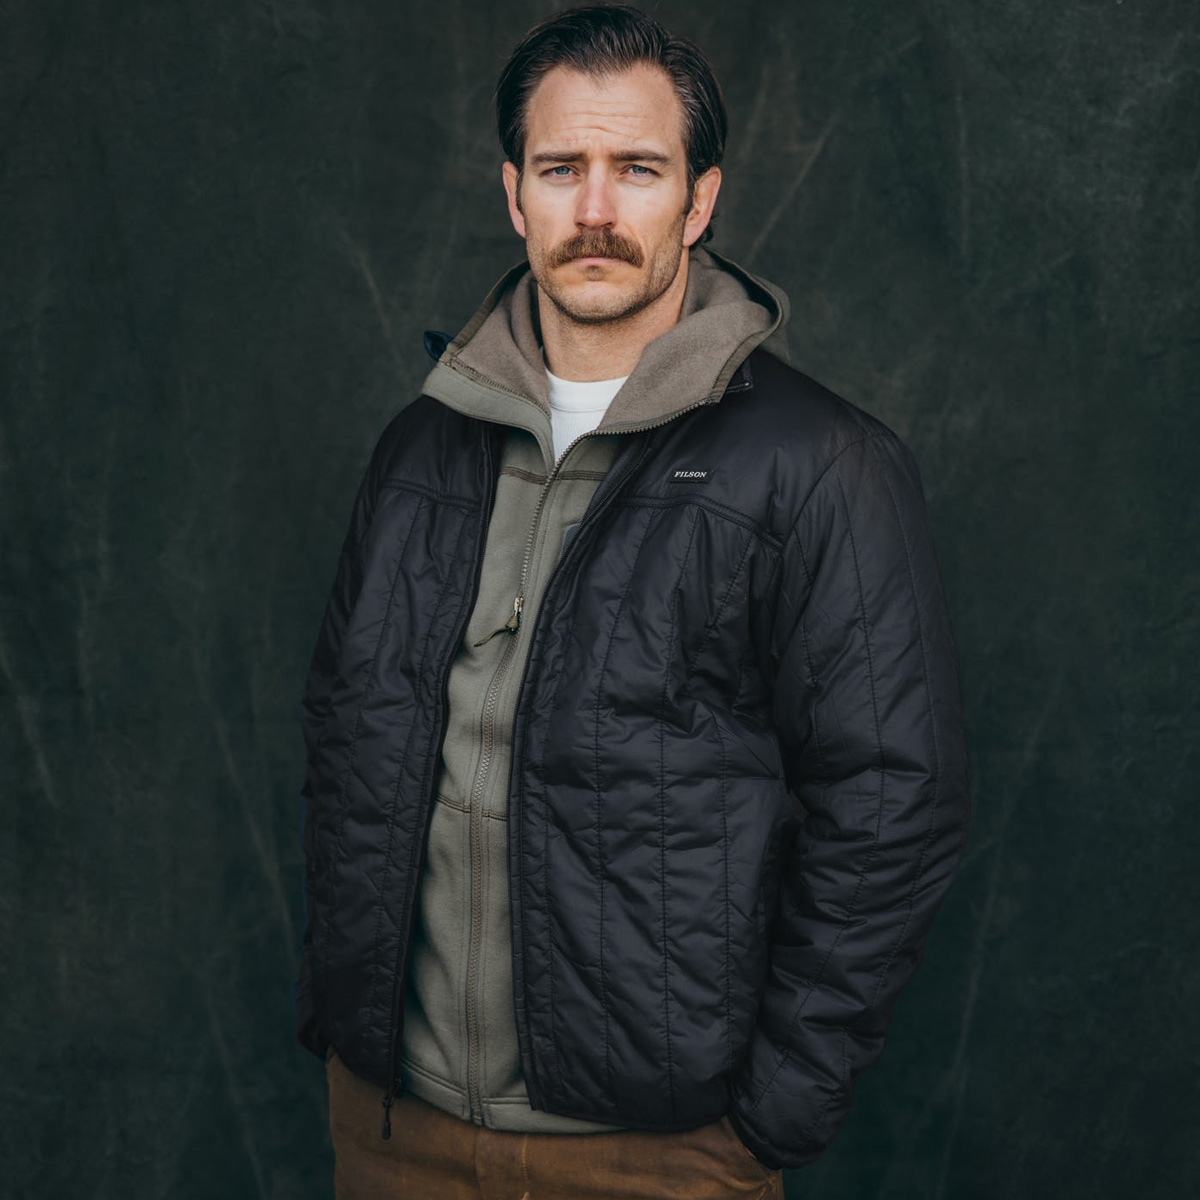 Filson Ultra Light Jacket Black, with Cordura® Ripstop nylon and 60gm PrimaLoft® Gold insulation